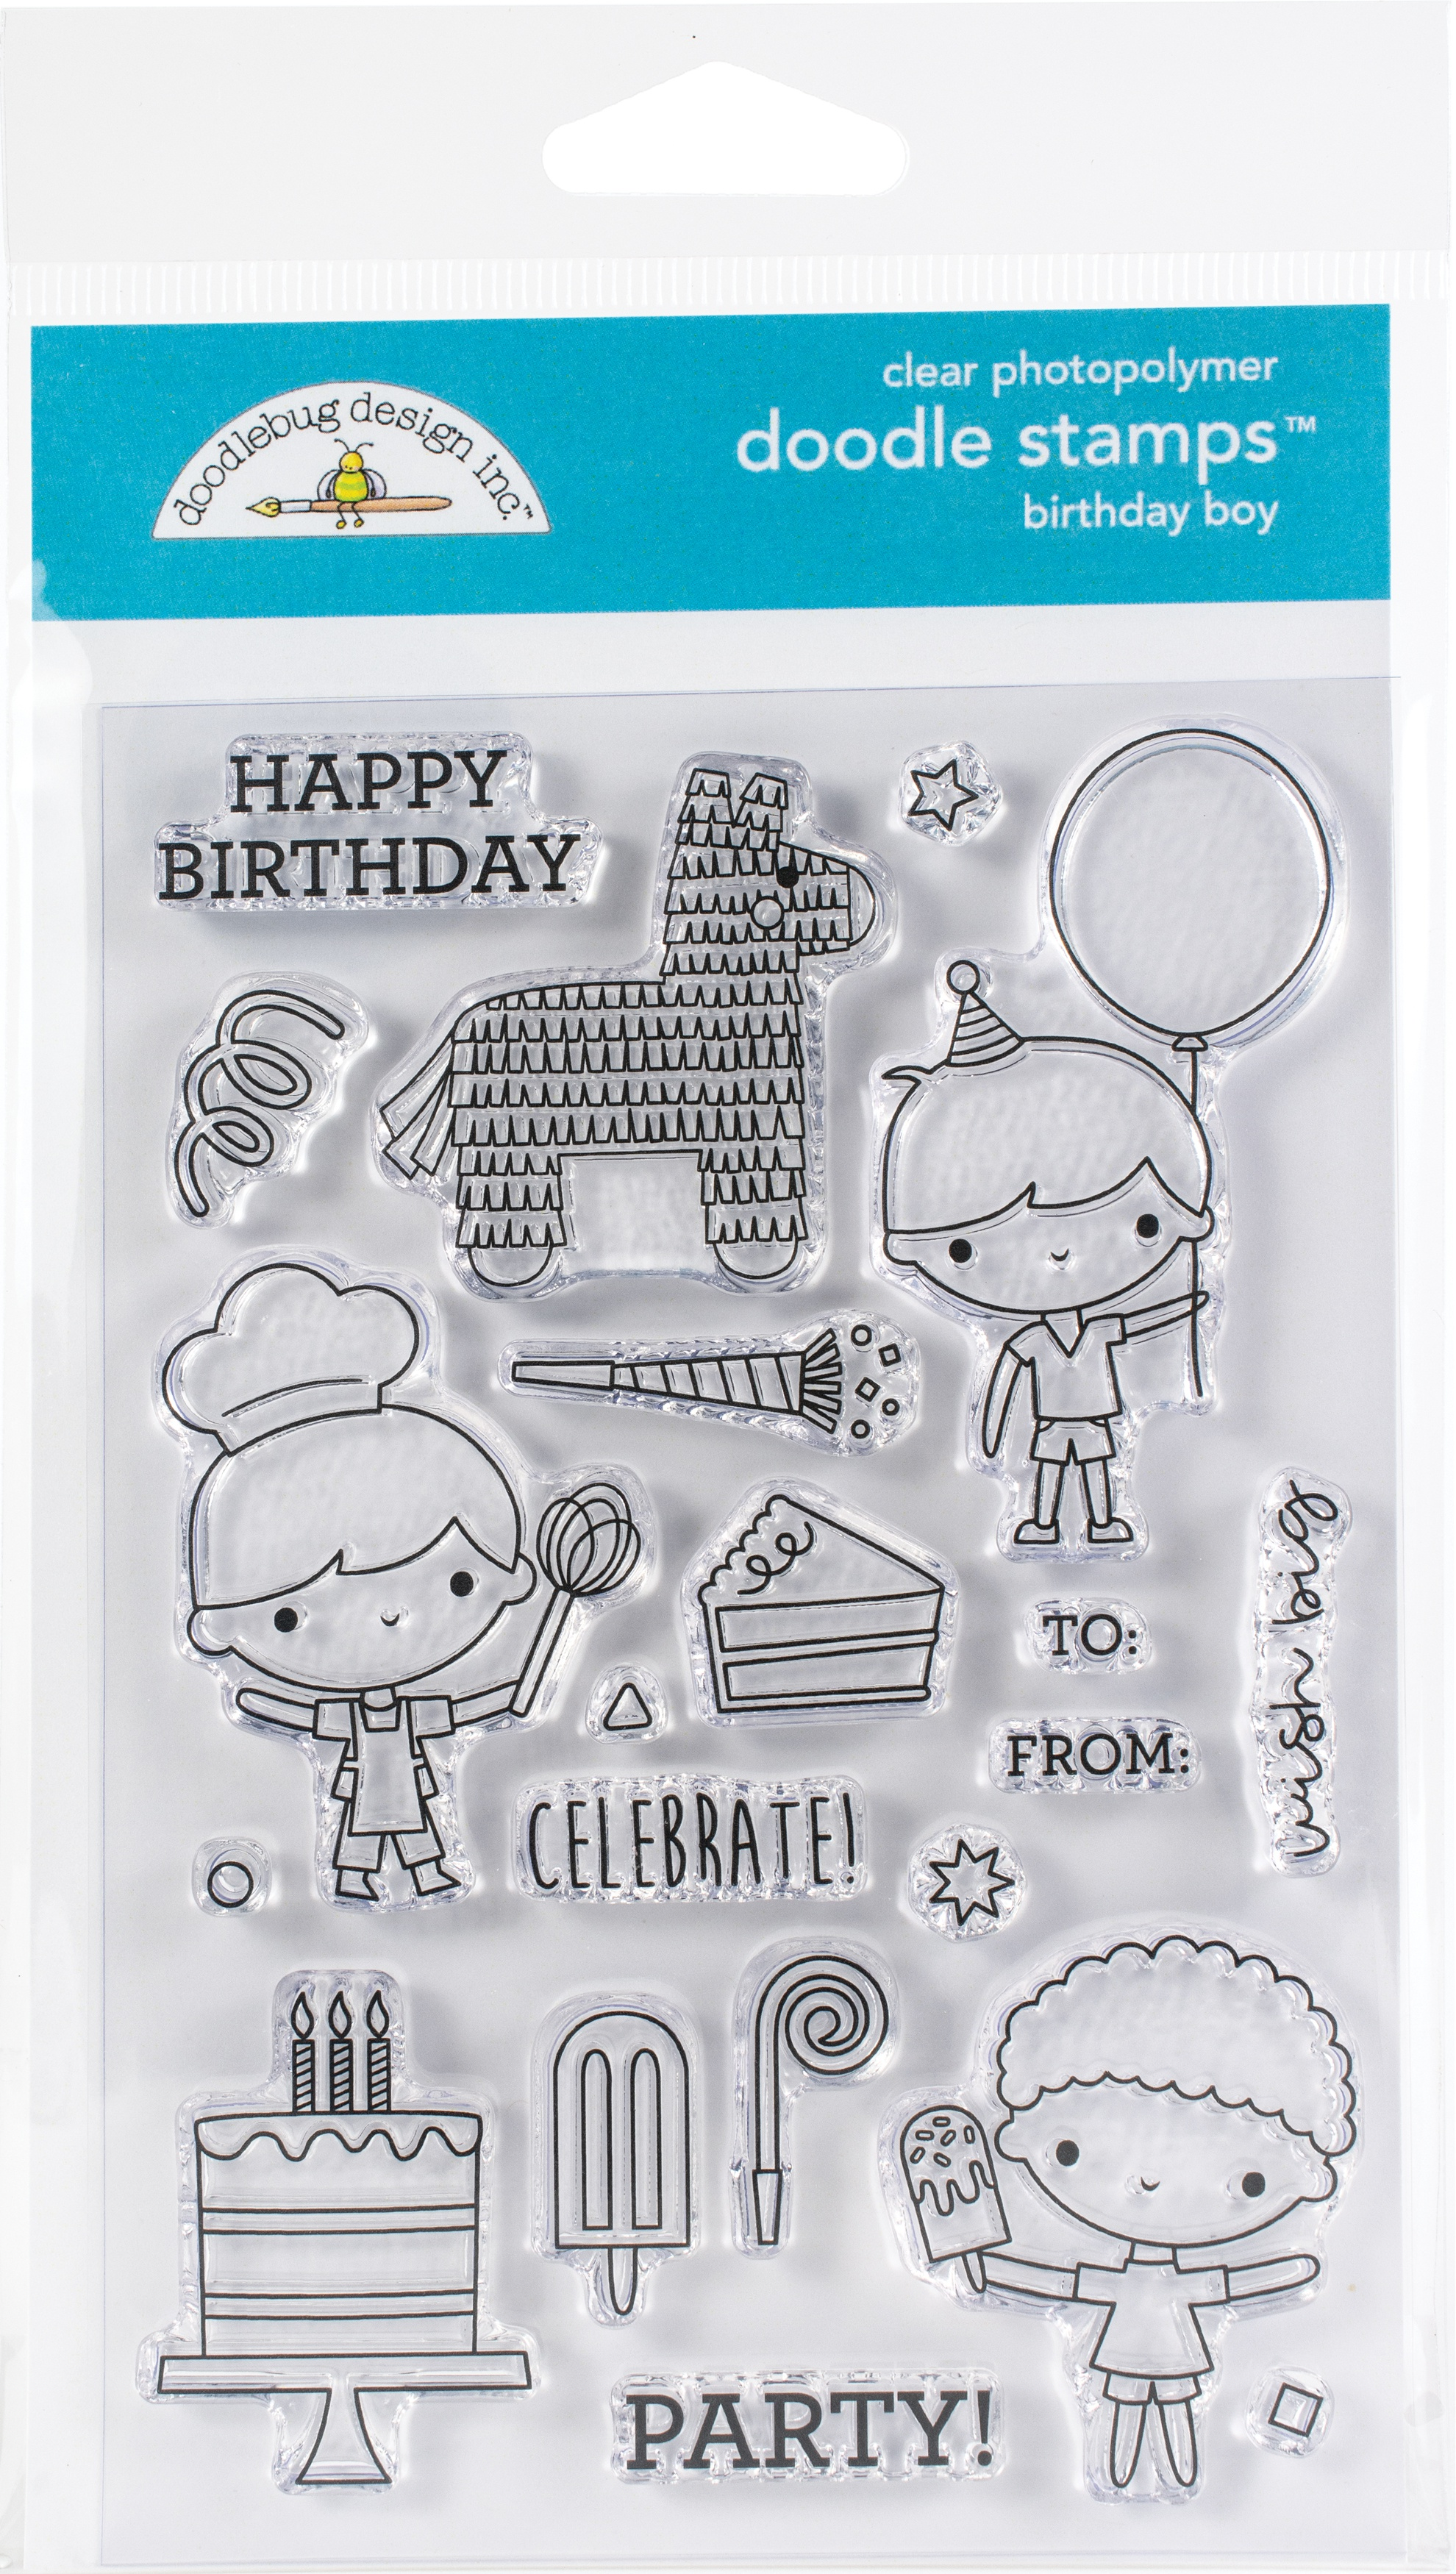 Doodlebug Clear Doodle Stamps-Birthday Boy Party Time